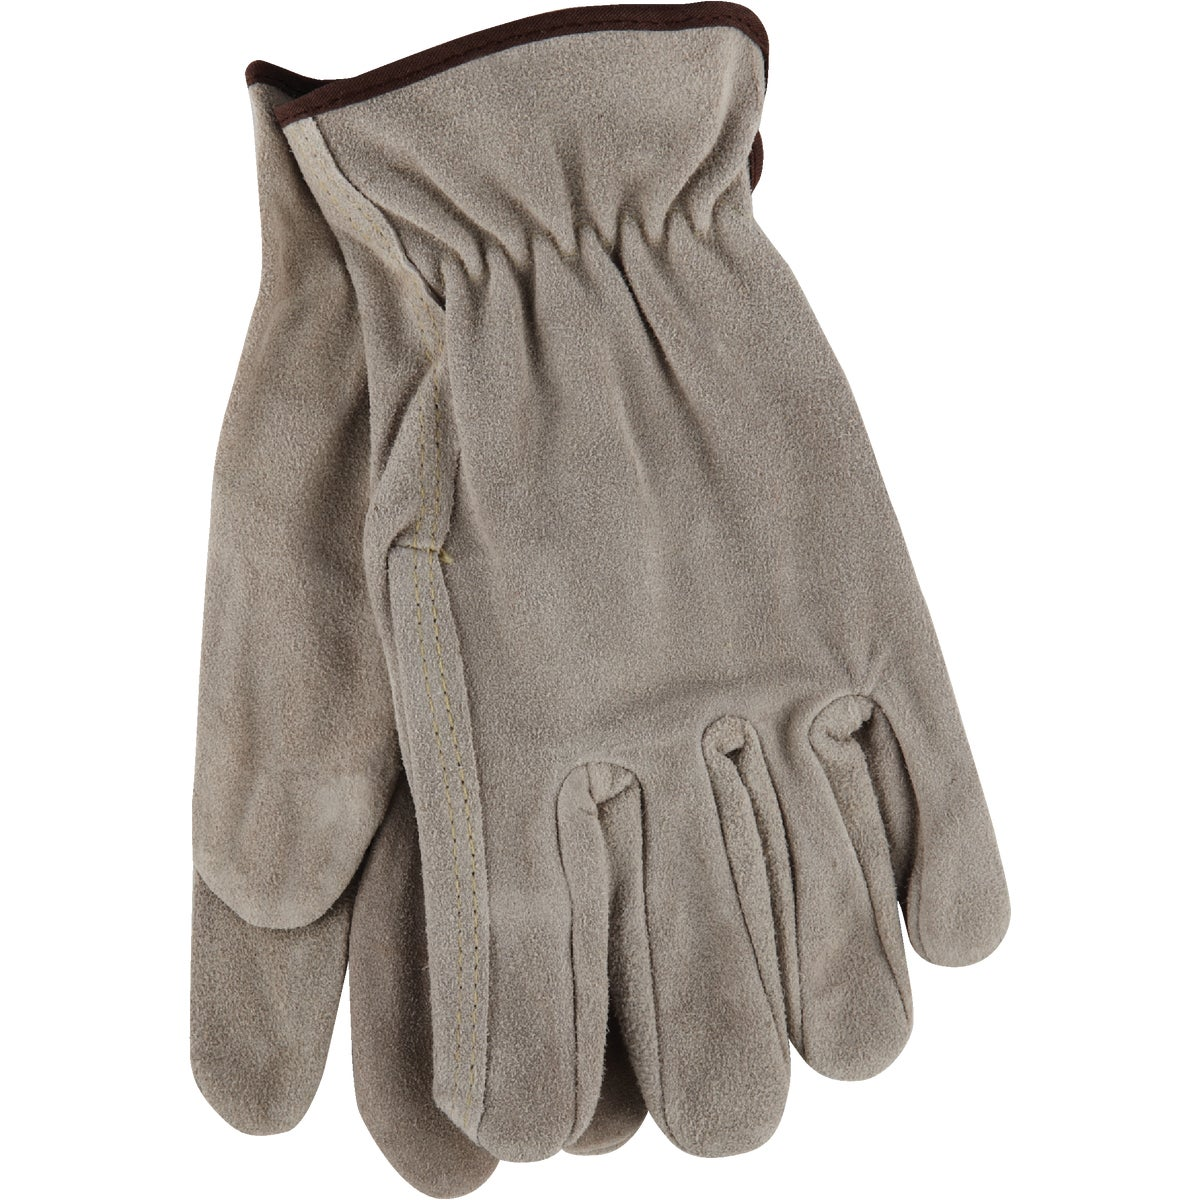 LRG SUEDE LEATHER GLOVE - 725594 by Do it Best